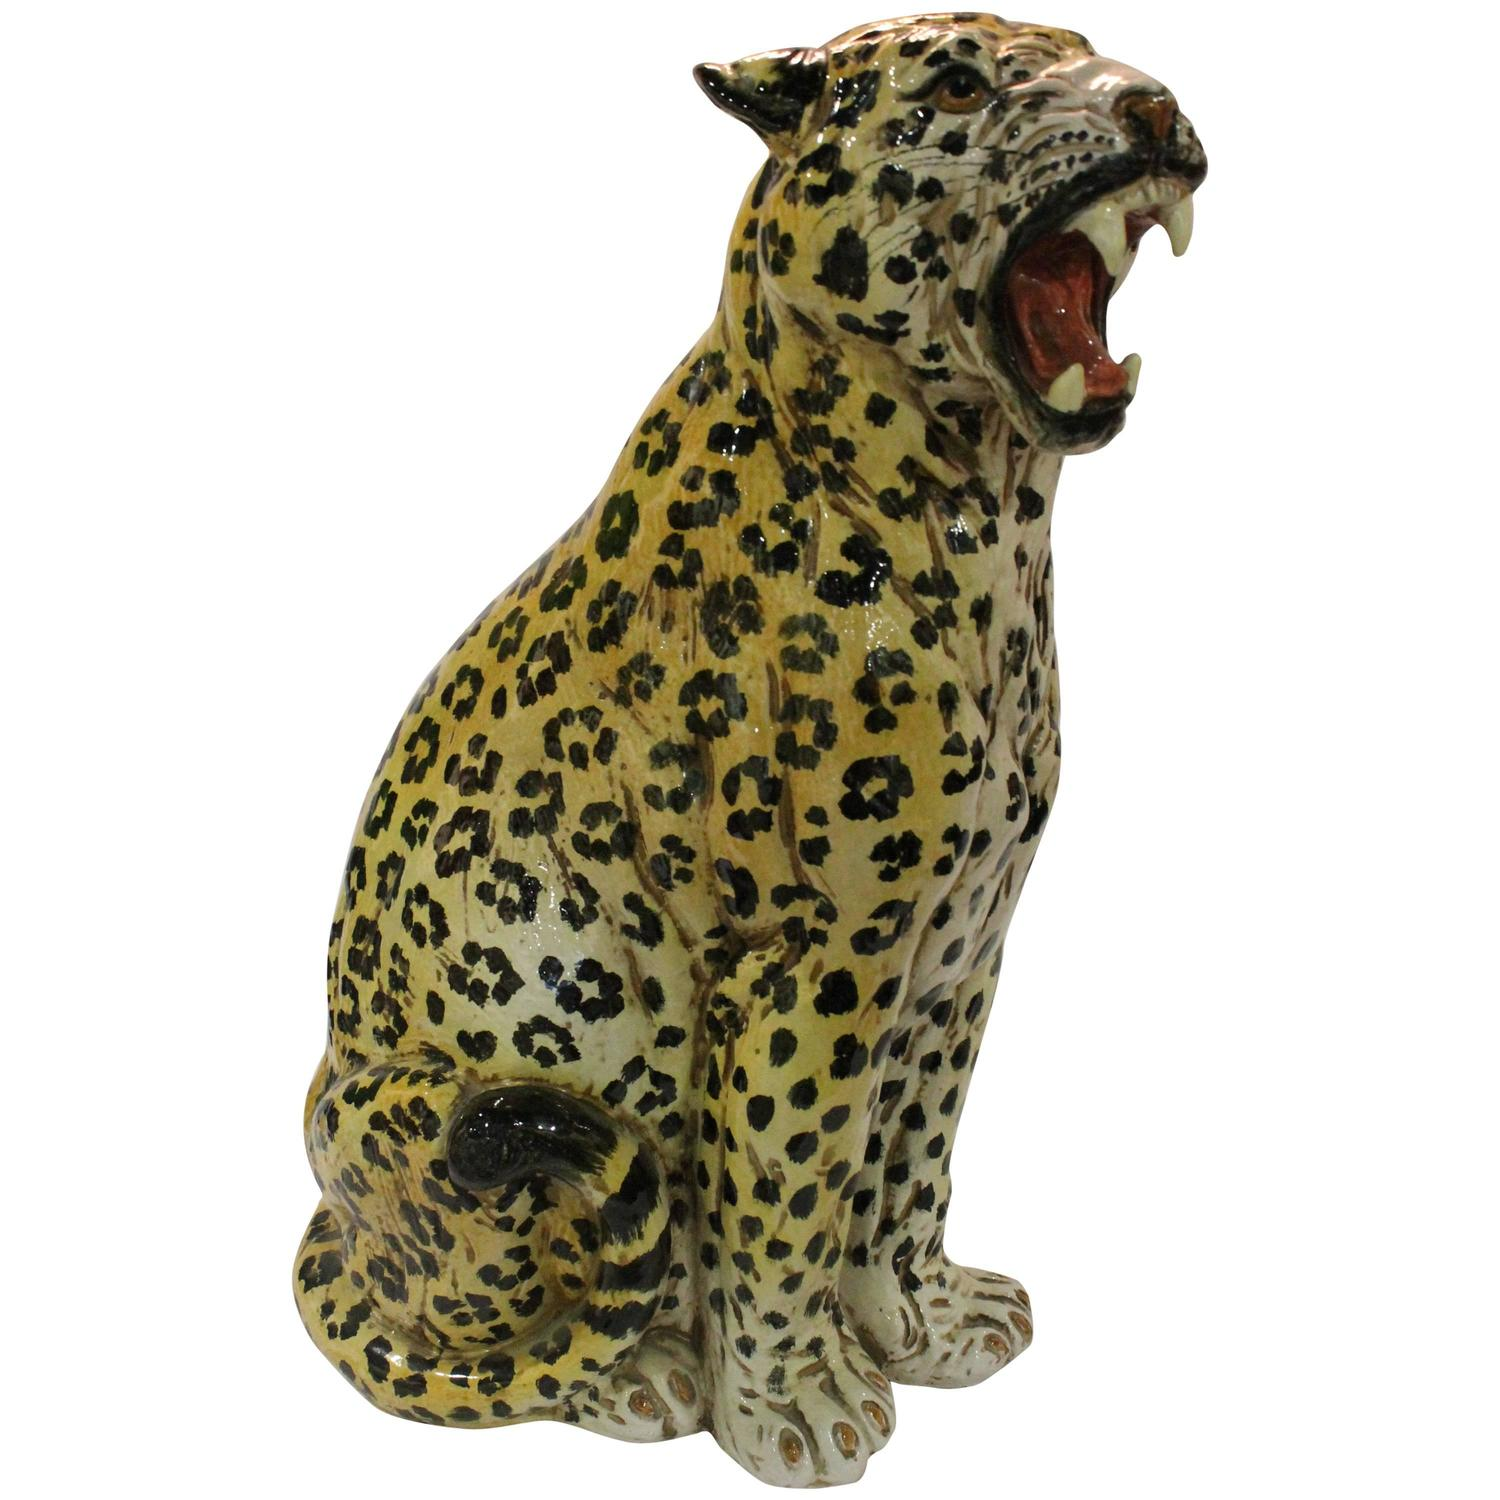 Vintage italian terra cotta cheetah statue for sale at 1stdibs - Cheetah statues ...